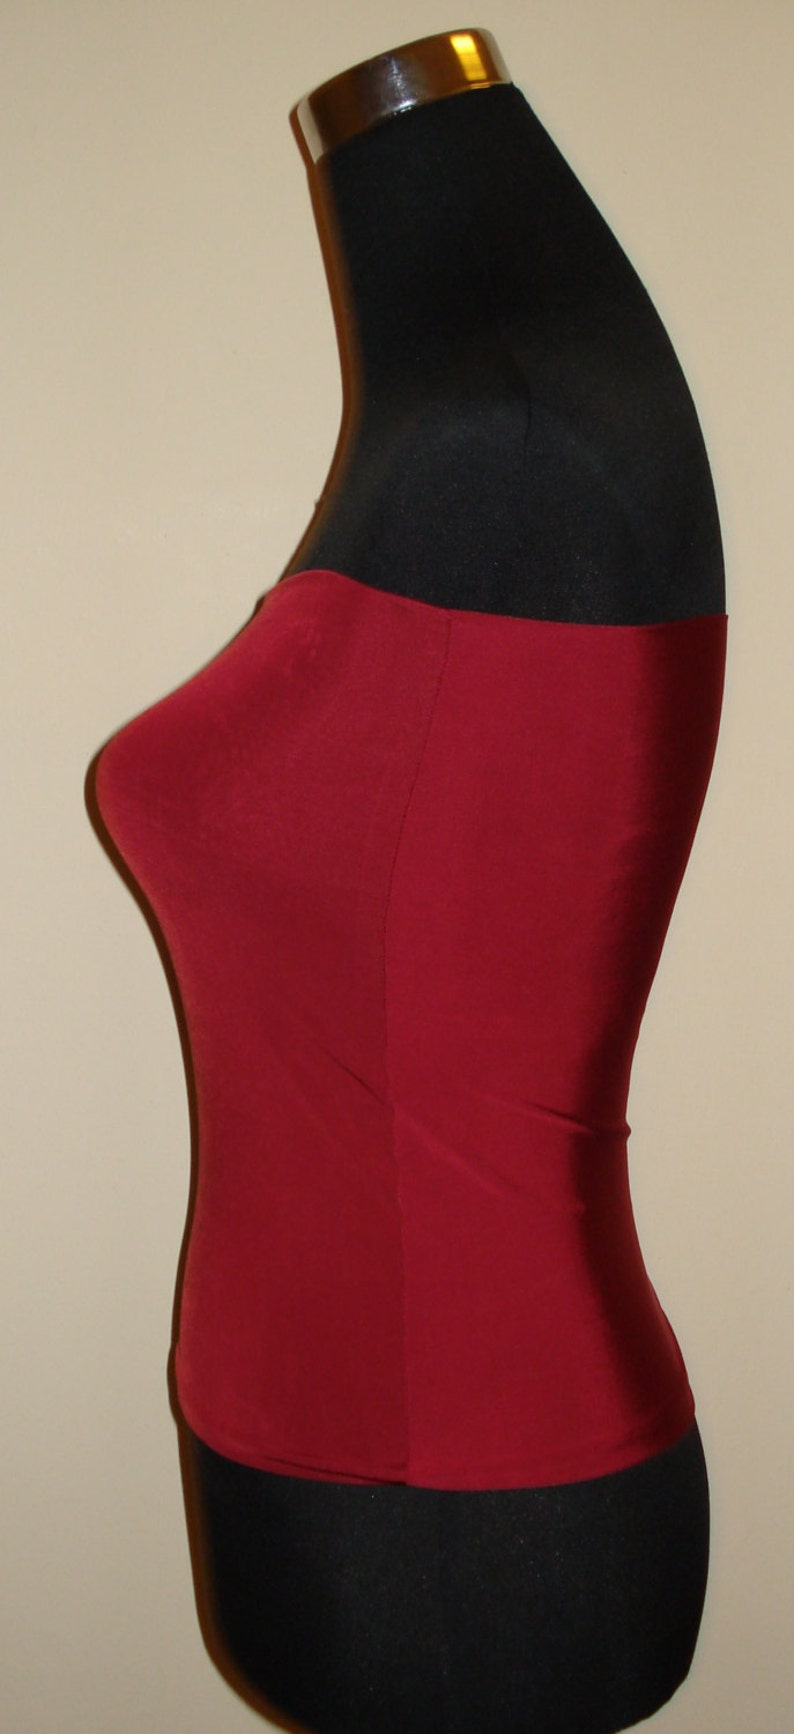 5e0feff3c34 Cherry red bandeau top boob tube top crop Top matching or